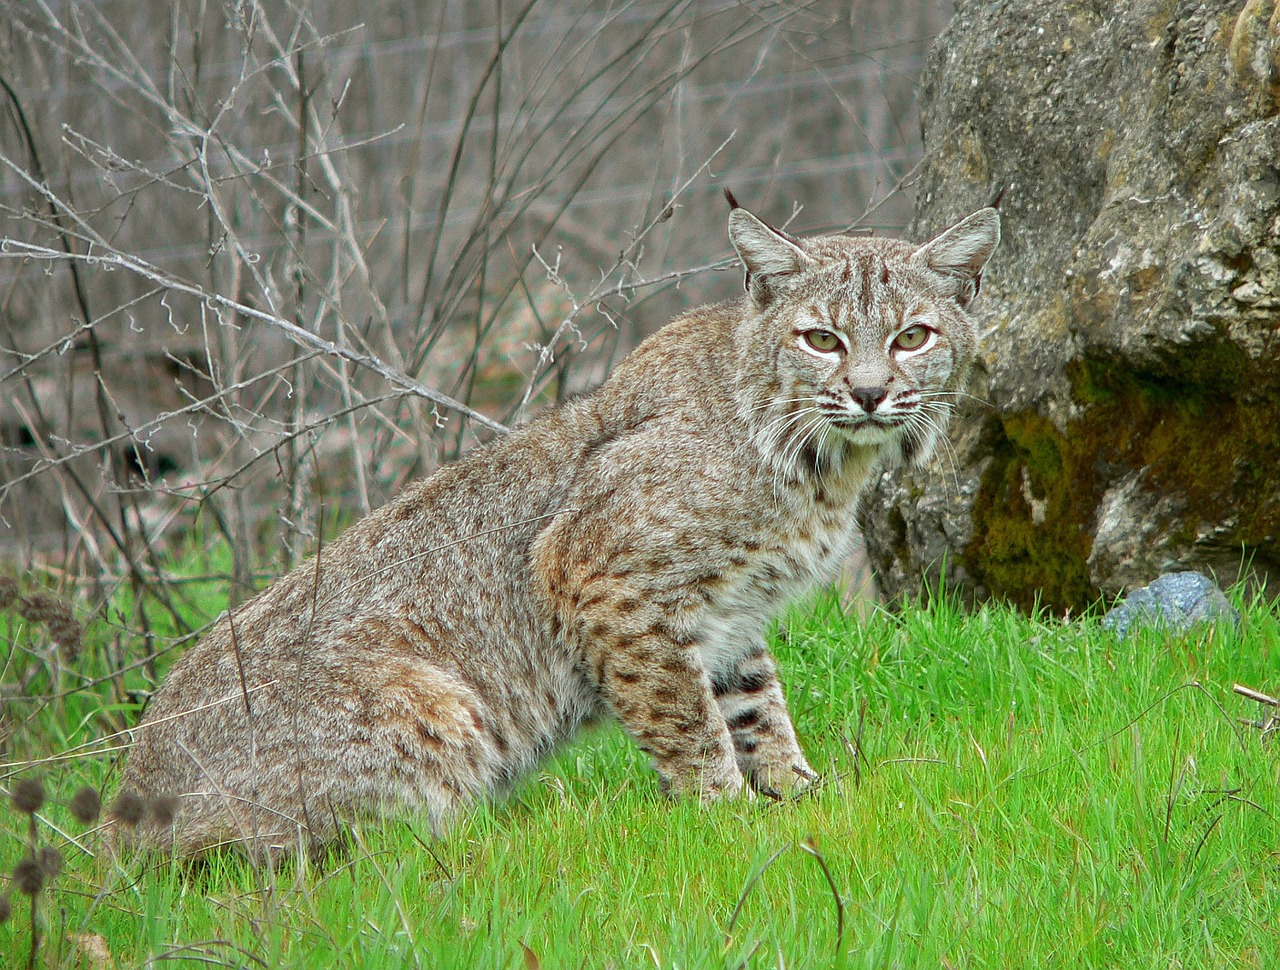 bobcat feline wildlife free photo